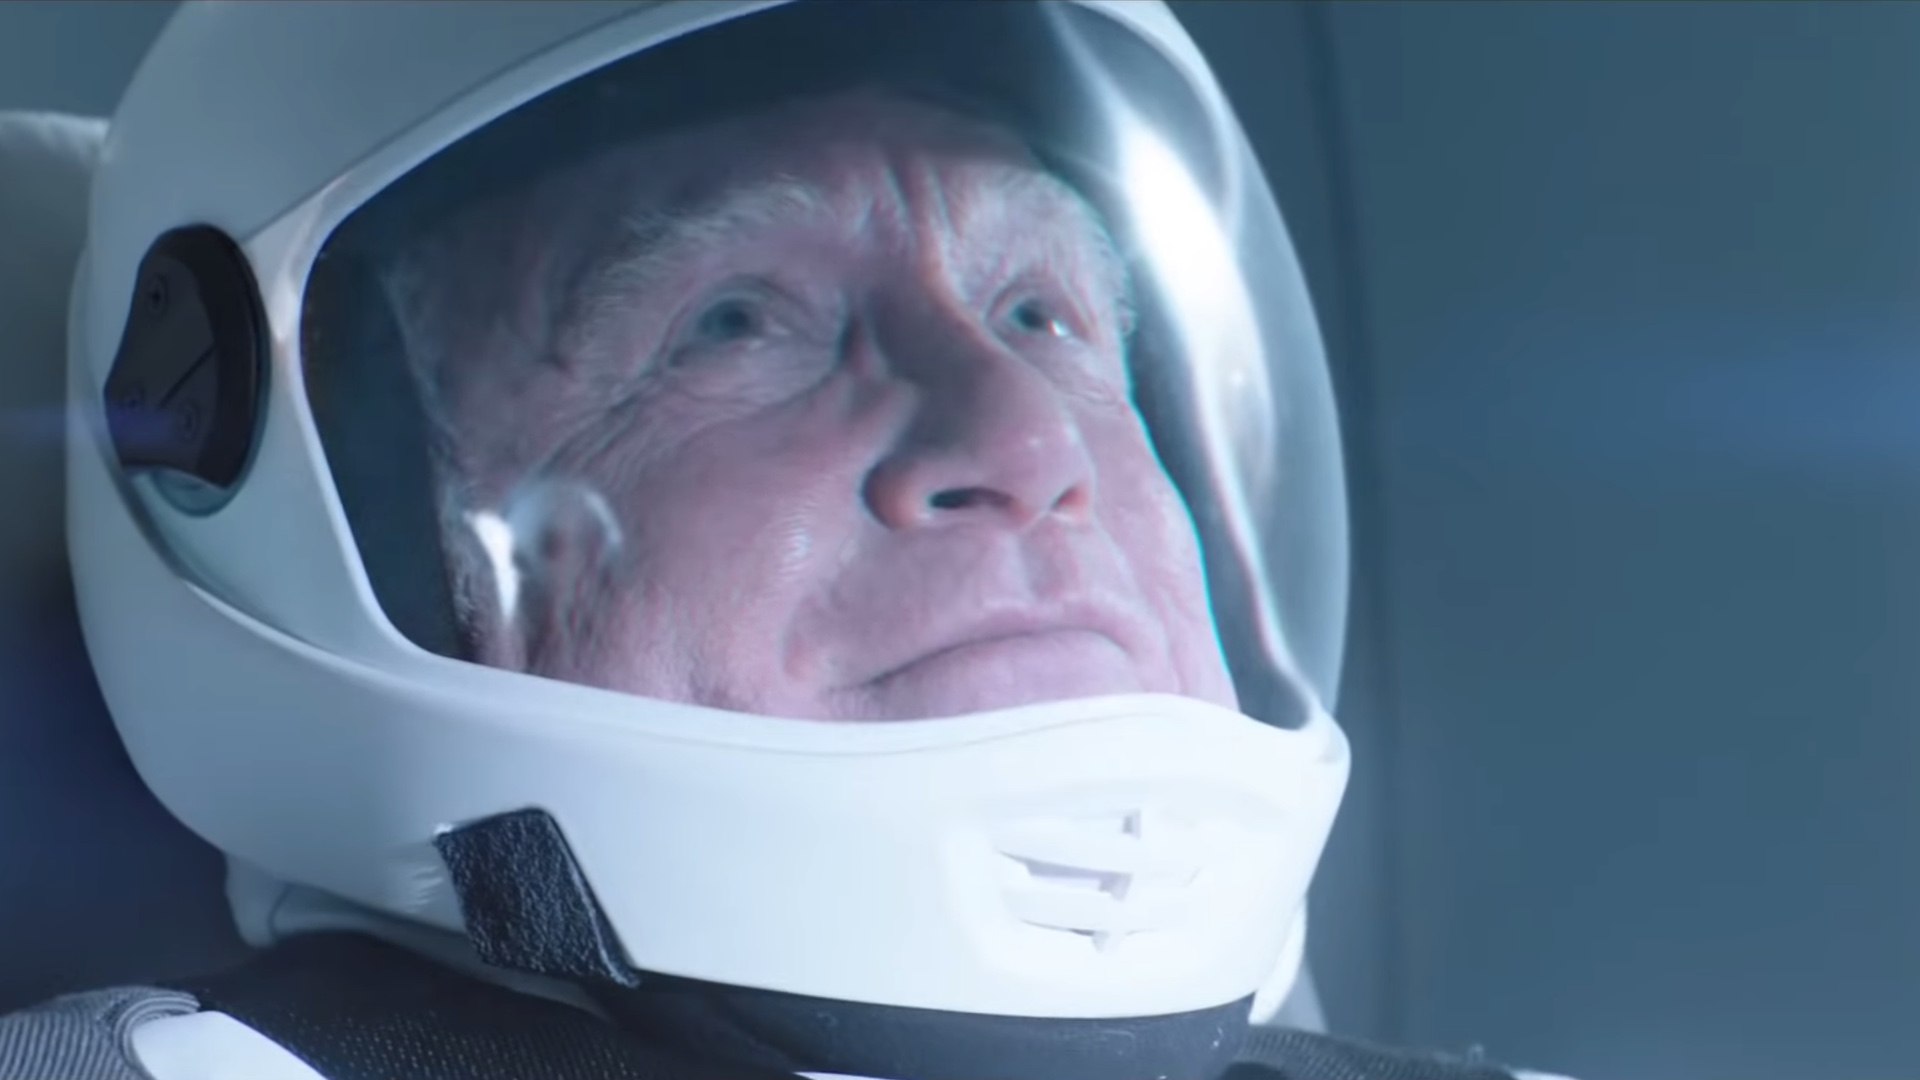 trailer-for-sweet-drama-astronaut-sees-richard-dreyfus-go-to-space-social.jpg